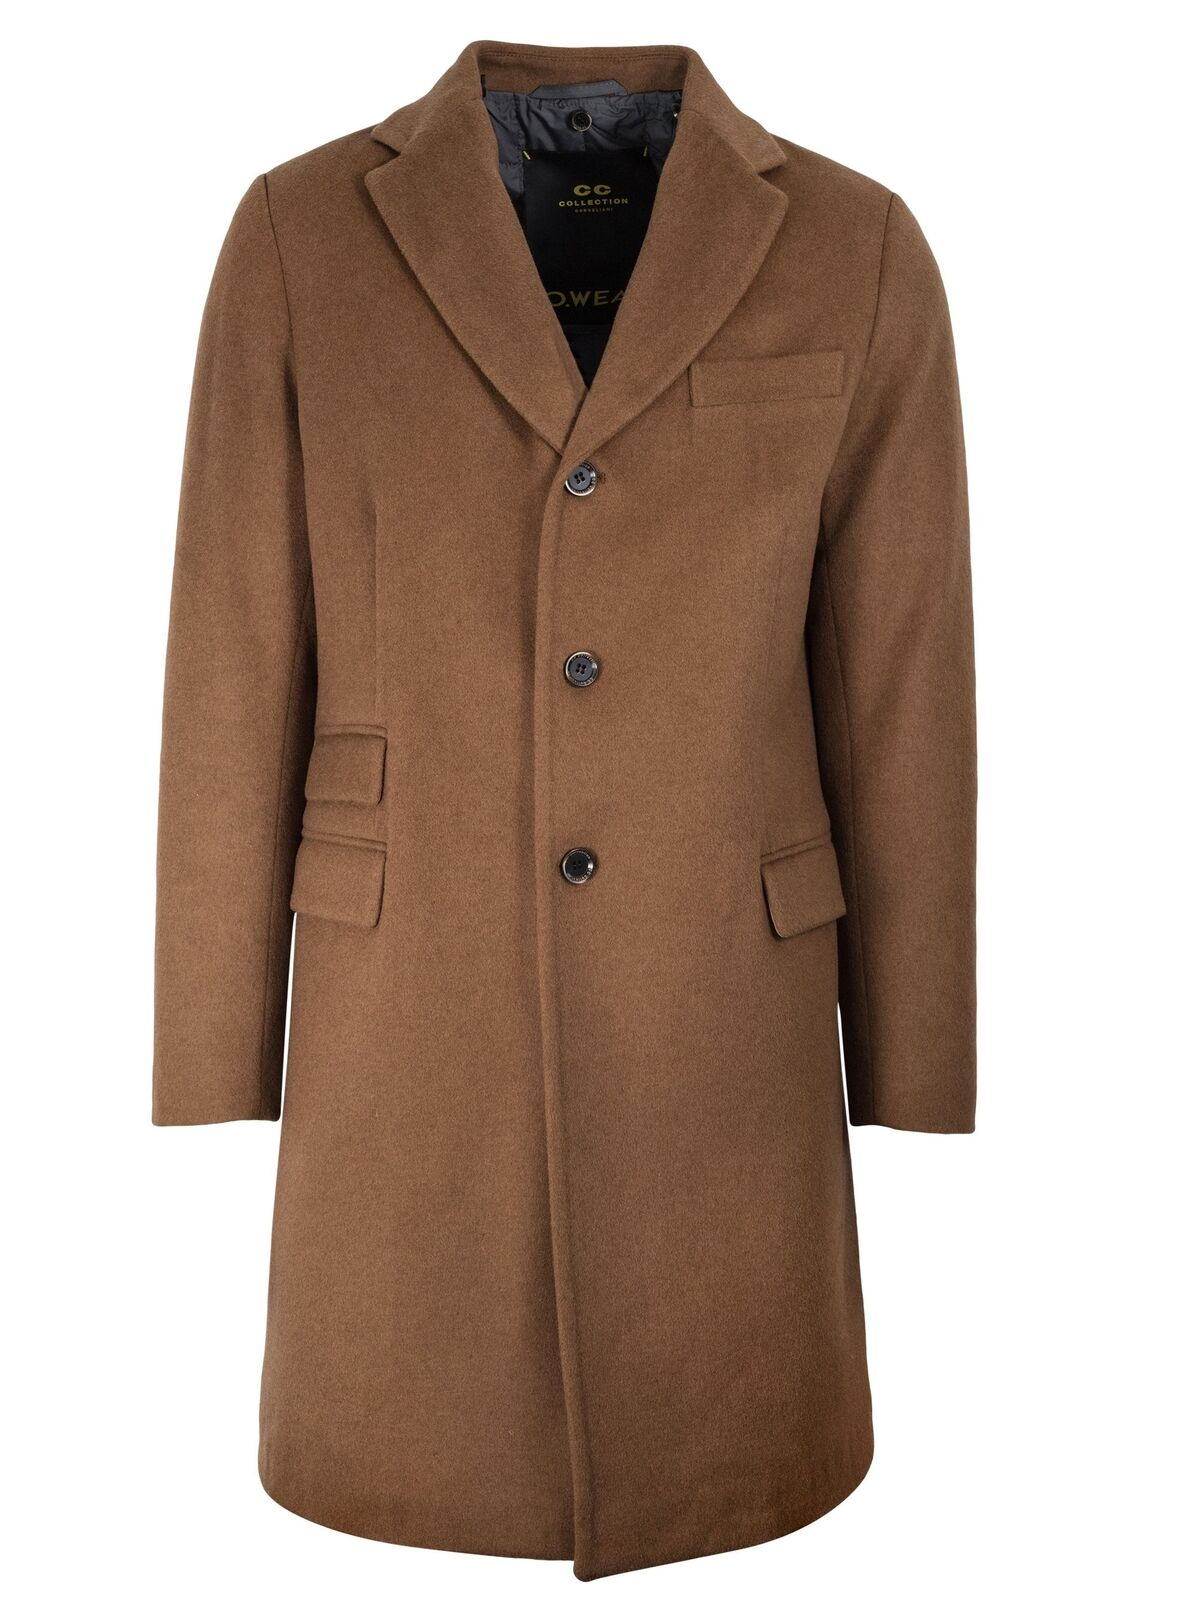 CC Collection Corneliani Camel Beige Wool-Blend Coat